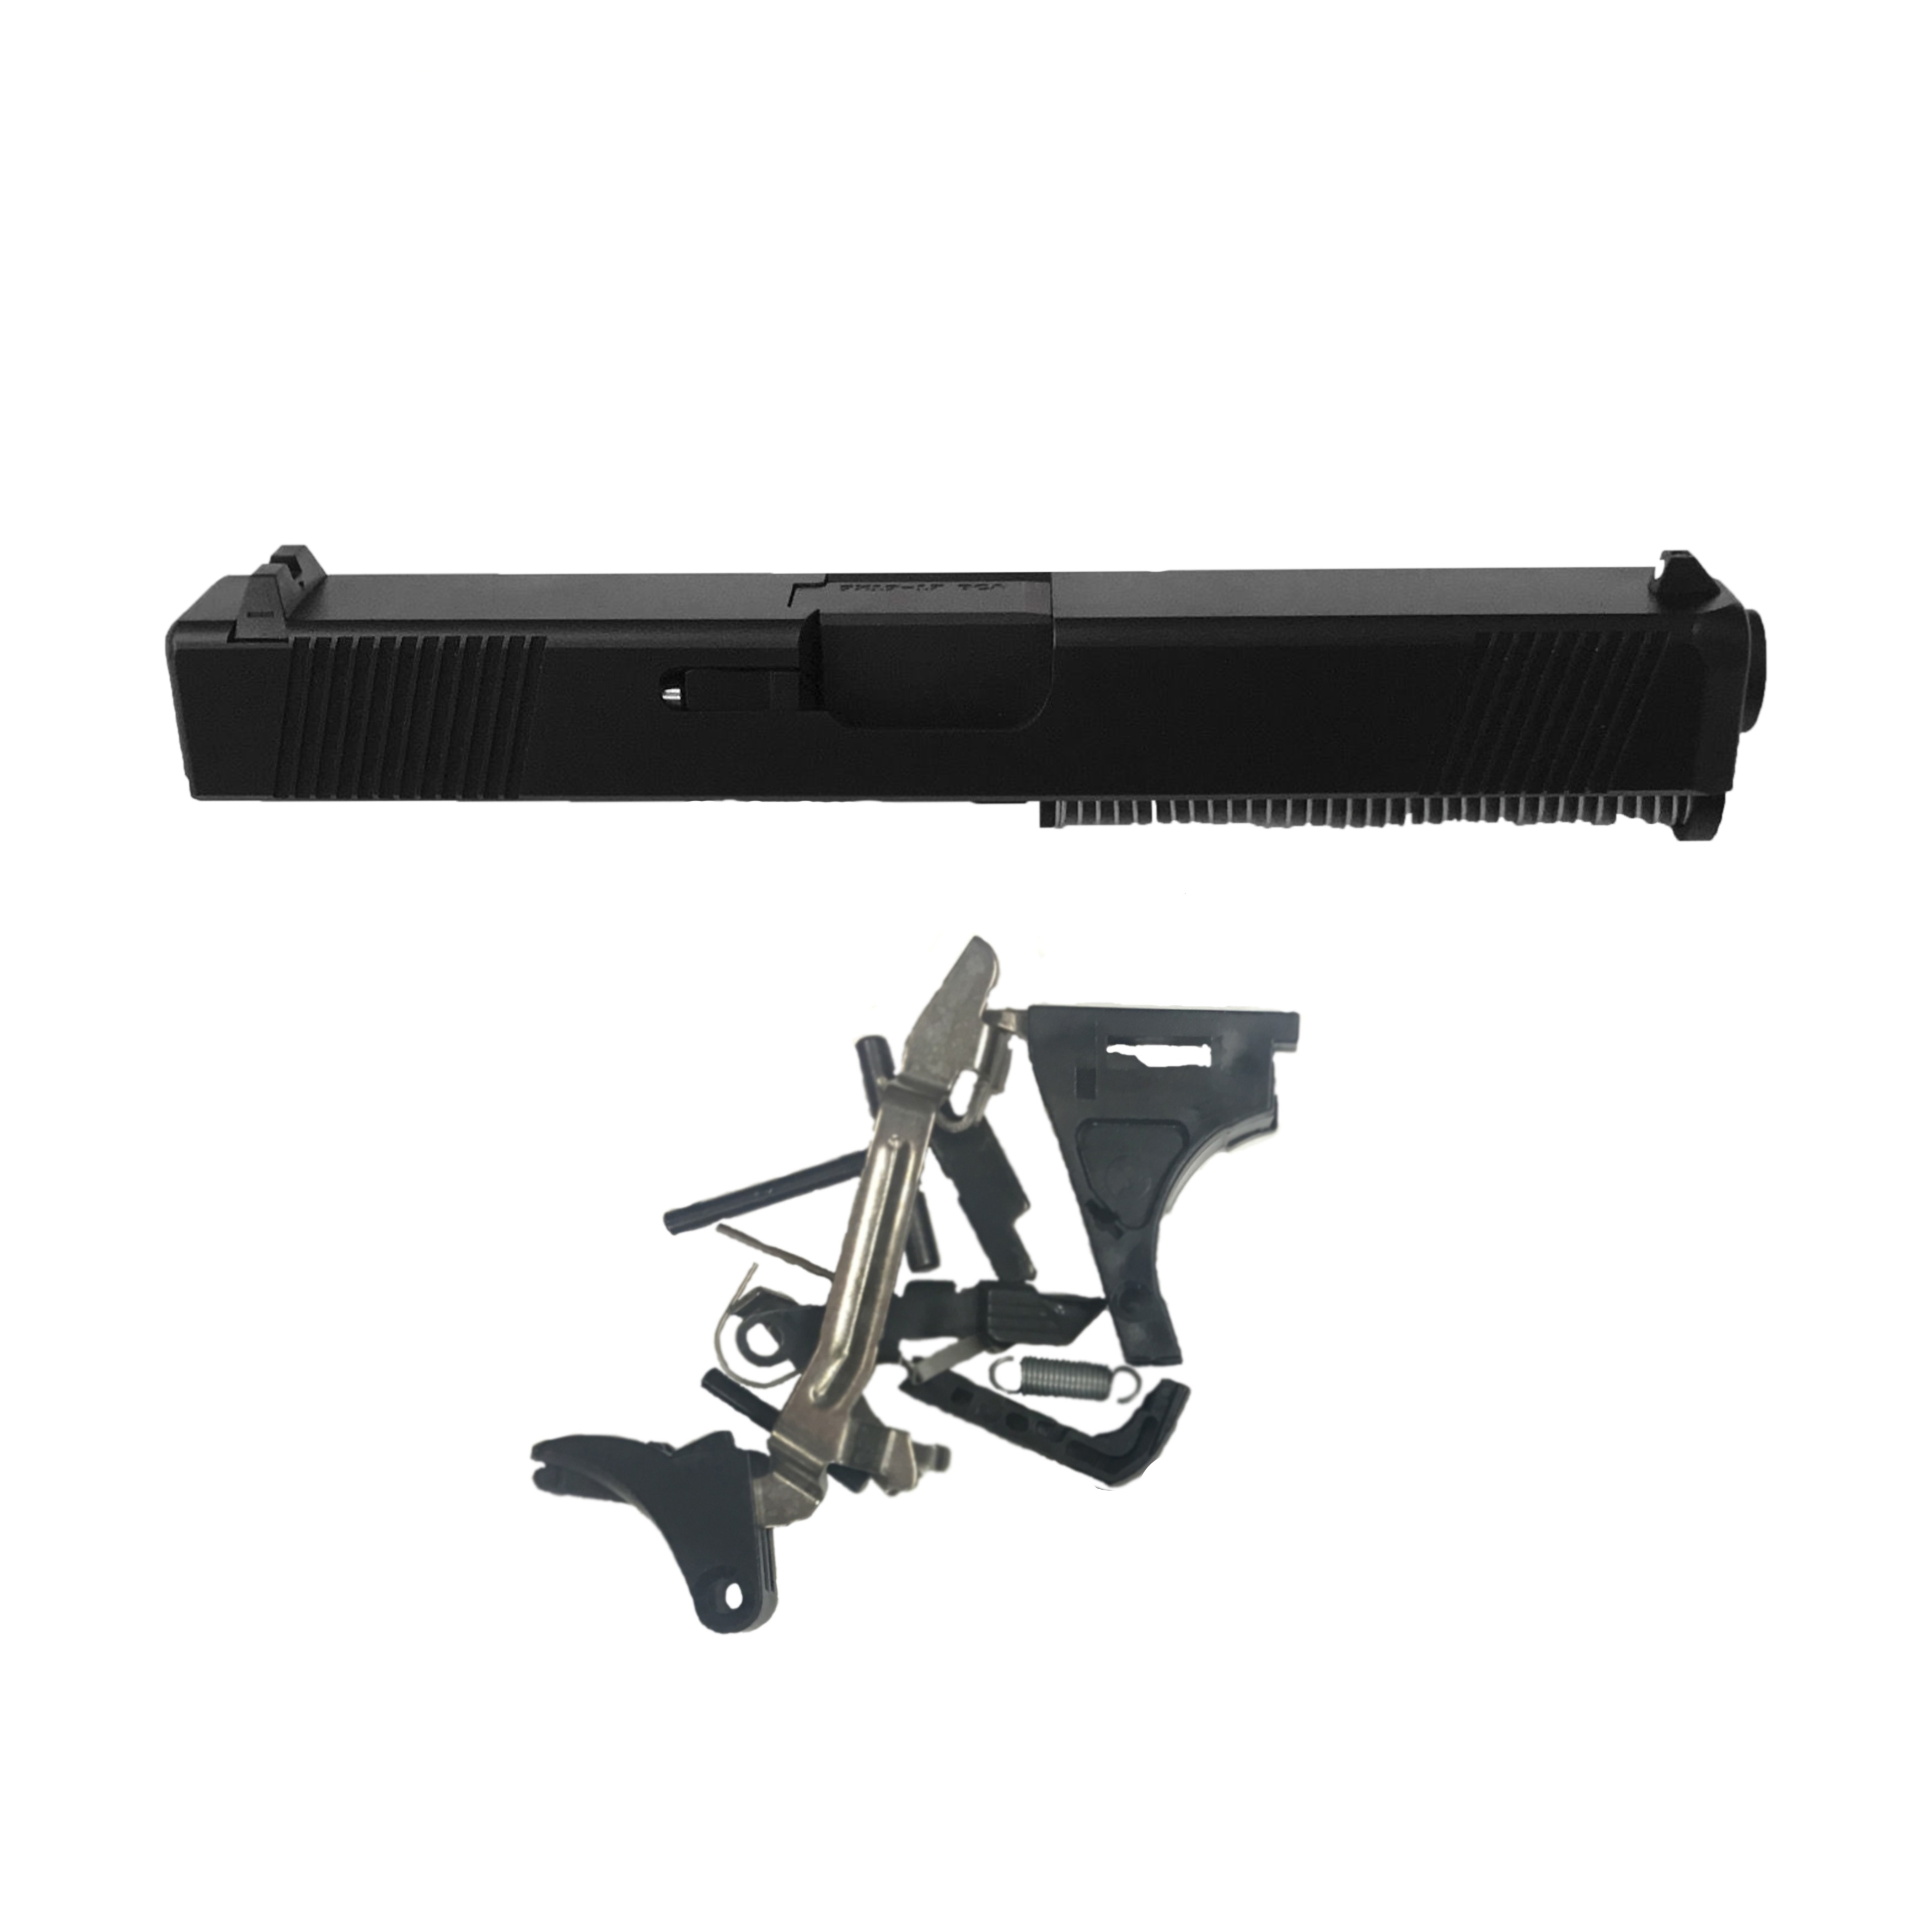 G17 upper & lower Parts Kit - 1776 Supply Co.